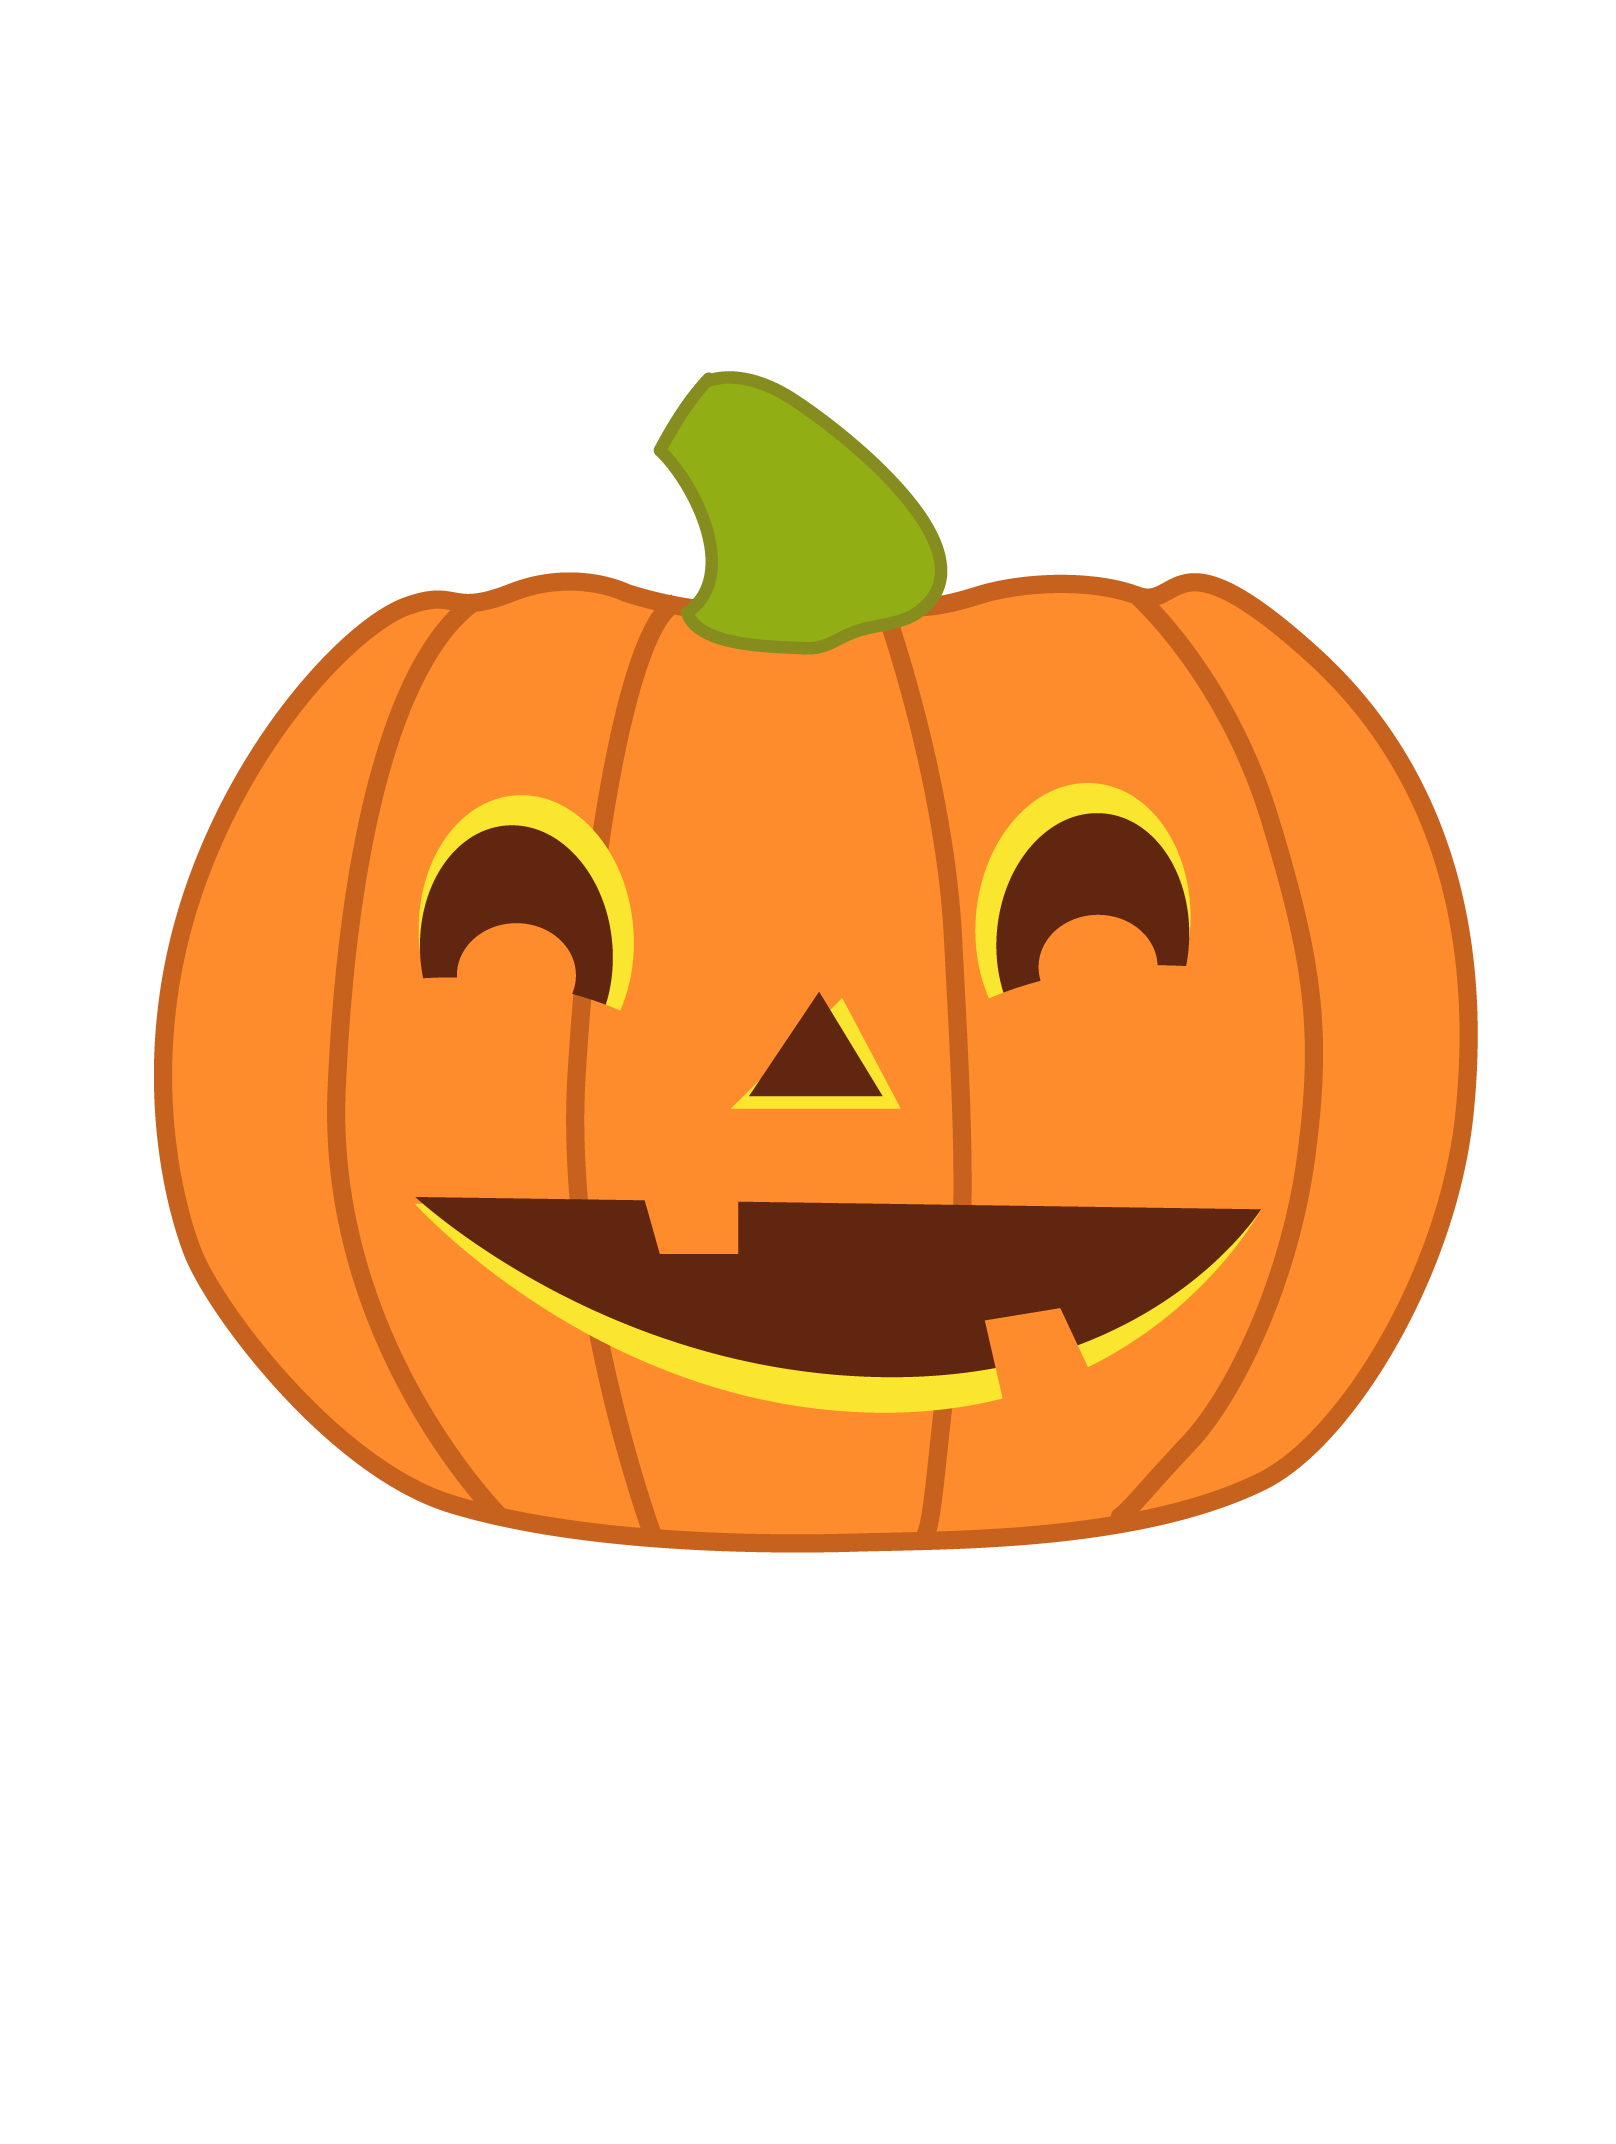 Halloween google search library. Cute pumpkin carving clipart